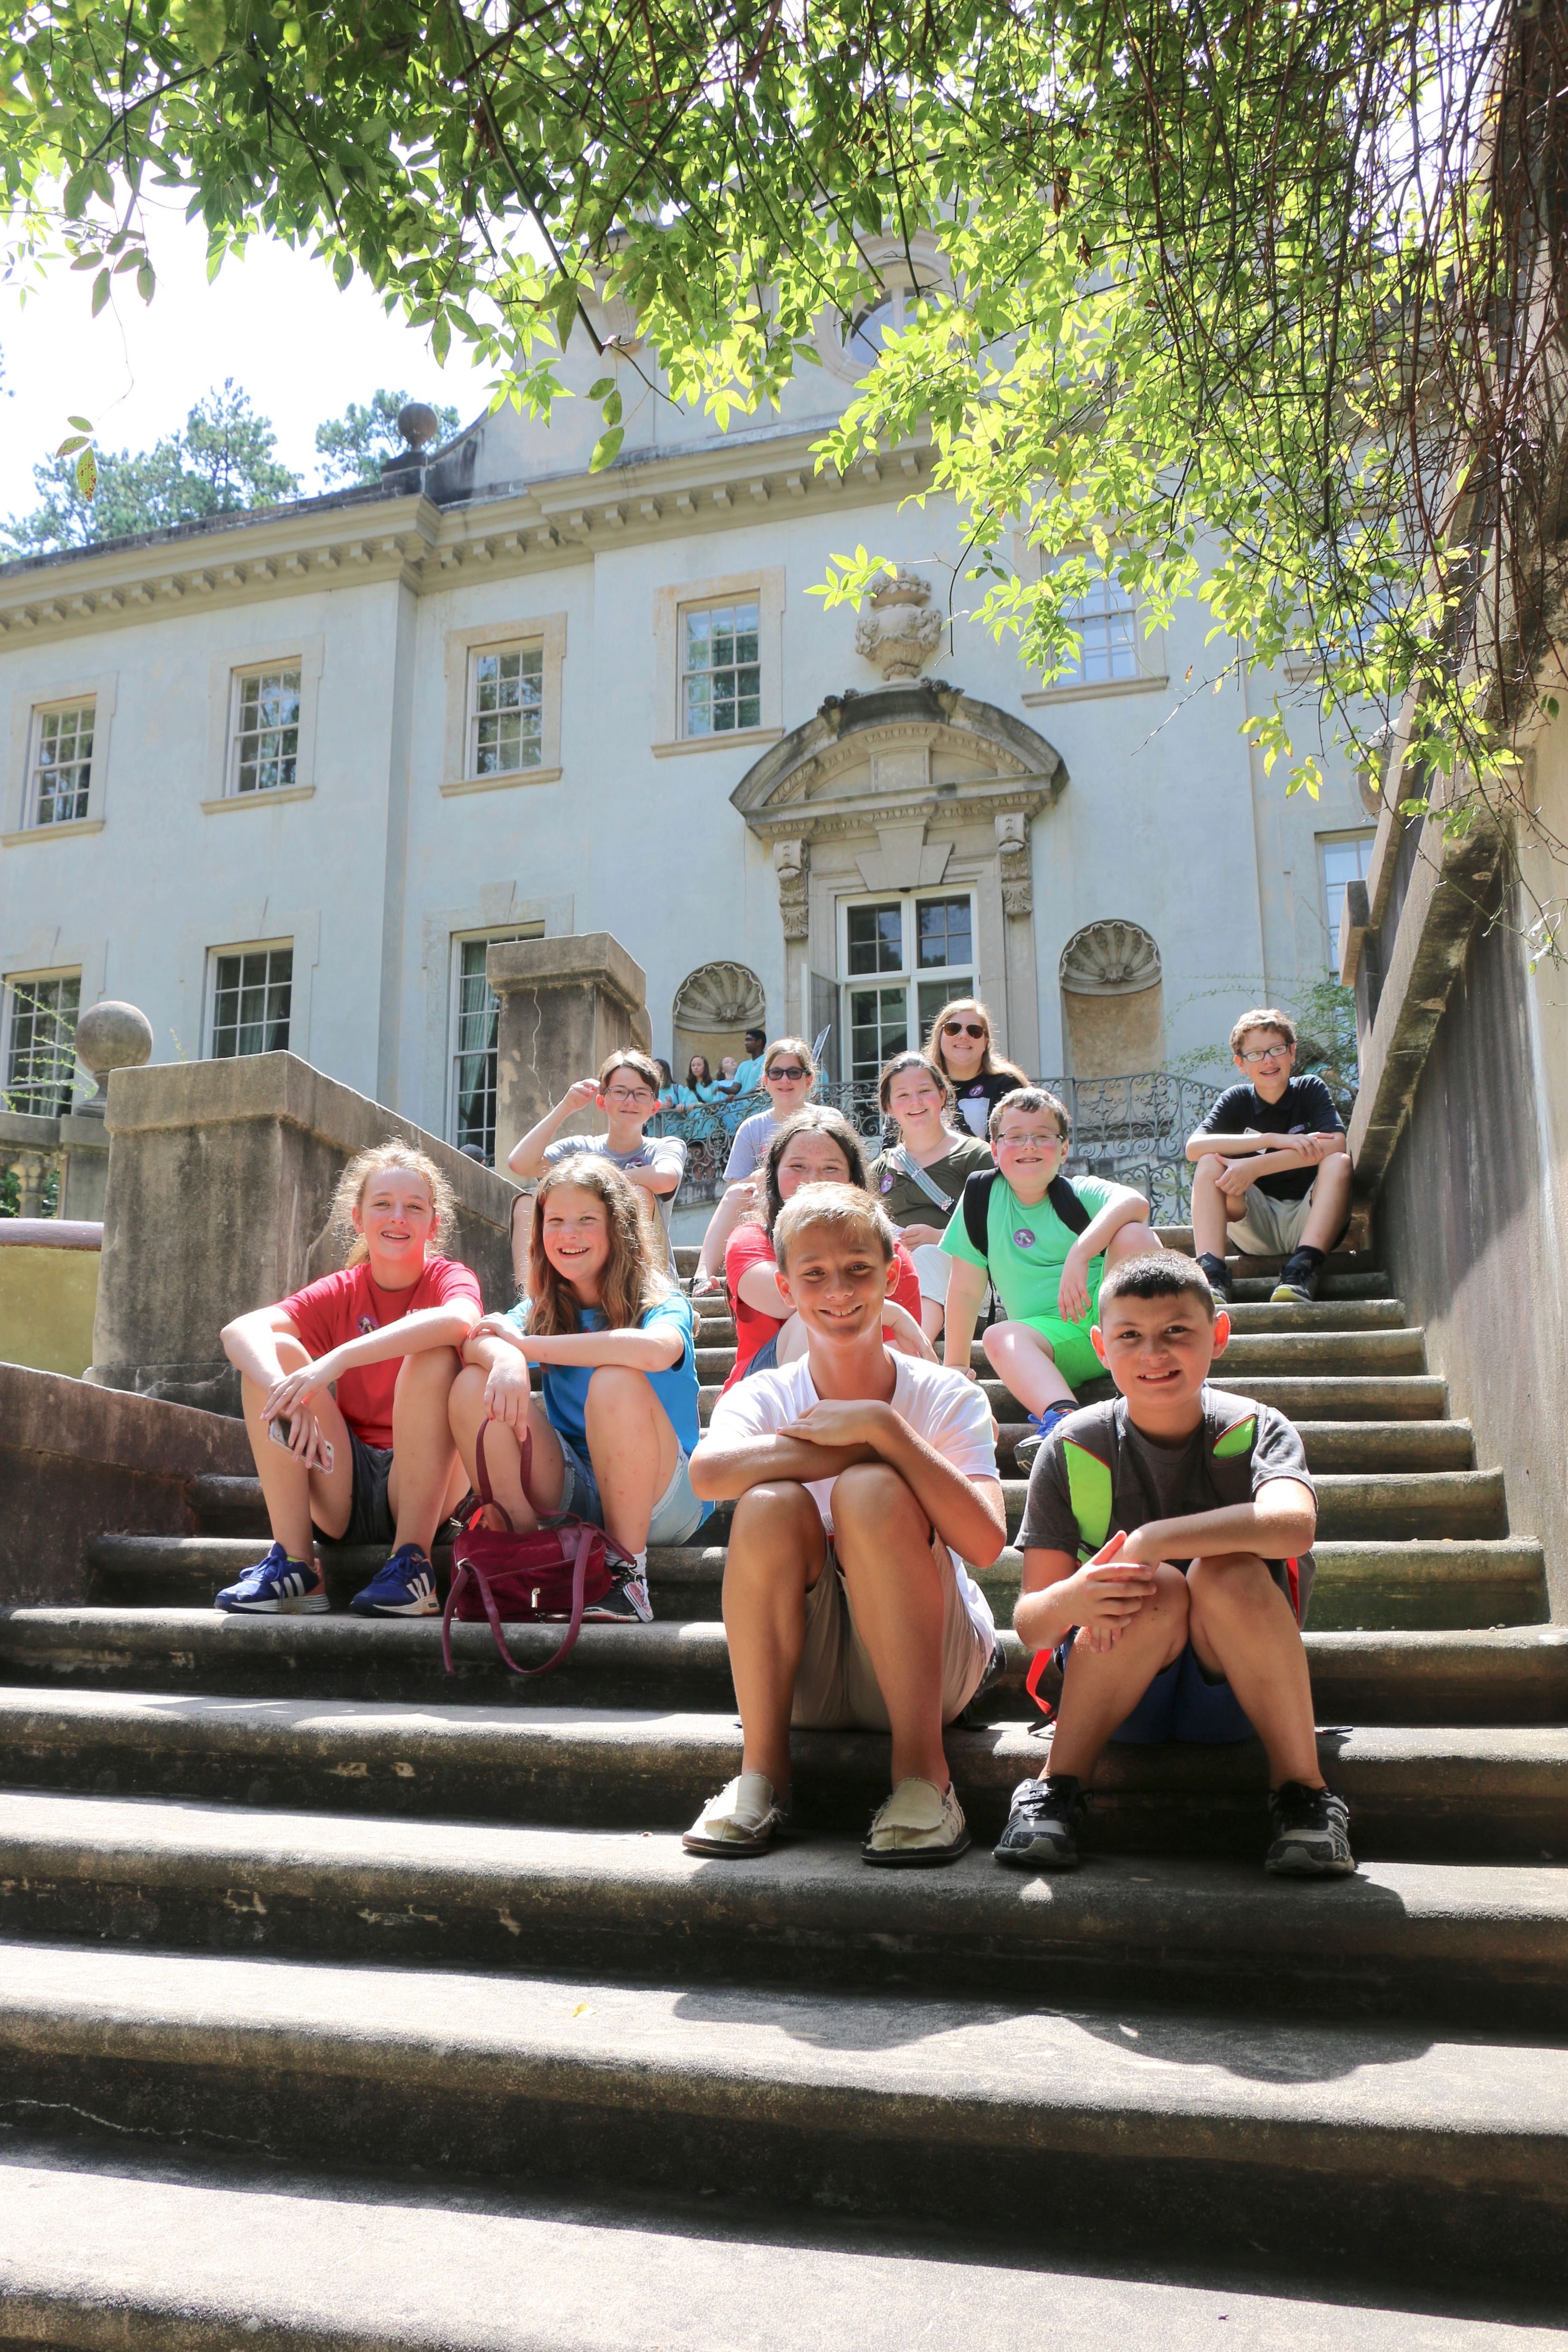 Georgia 4-H'ers take a break on the steps of the Swan House during 4-H Day at the Atlanta History Center.